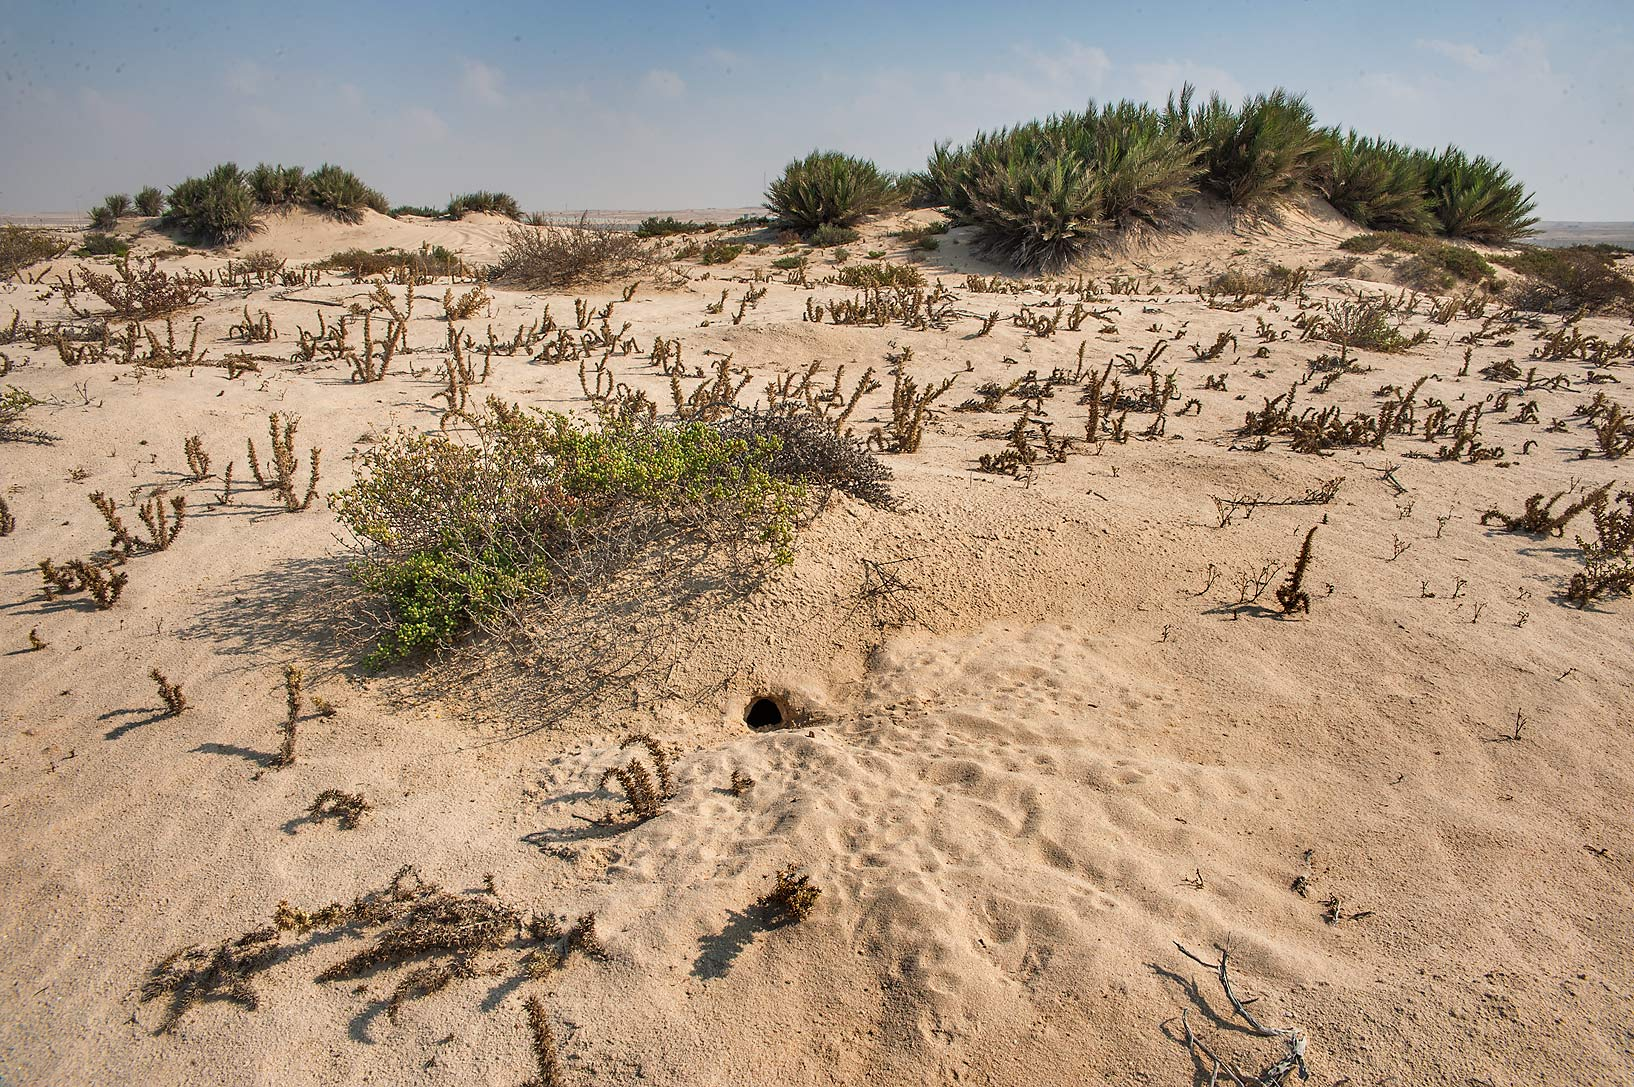 Animal burrows in sand on a beach in the area of...near Umm Bab in south-western Qatar